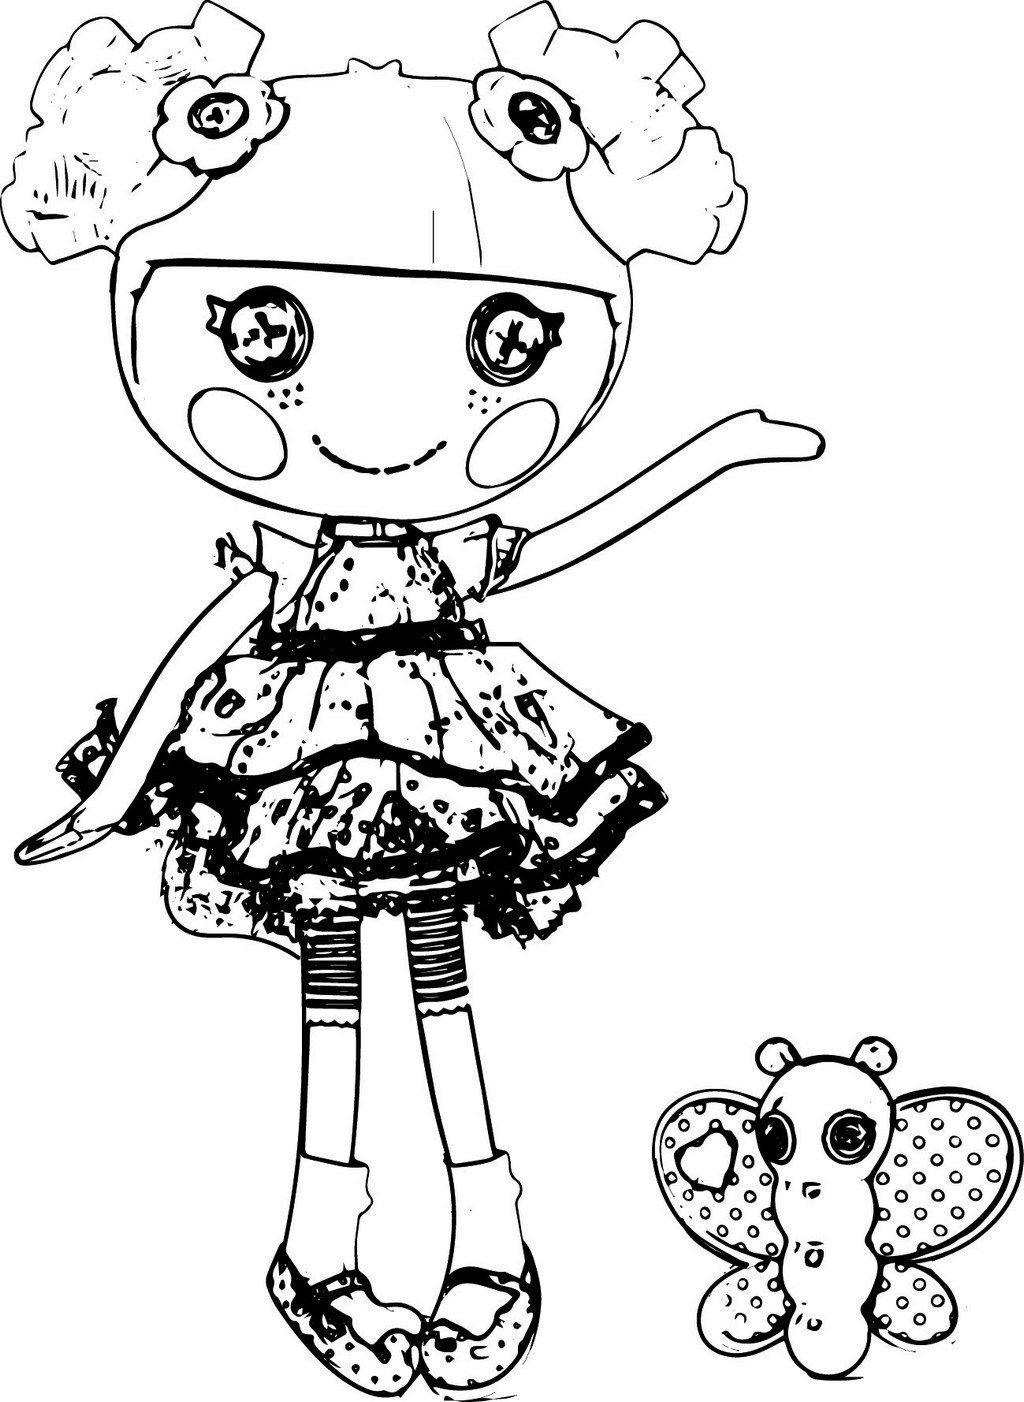 Blossom Flowerpot Lalaloopsy coloring page dolls | Cartoon coloring pages, Coloring  pages, Lalaloopsy